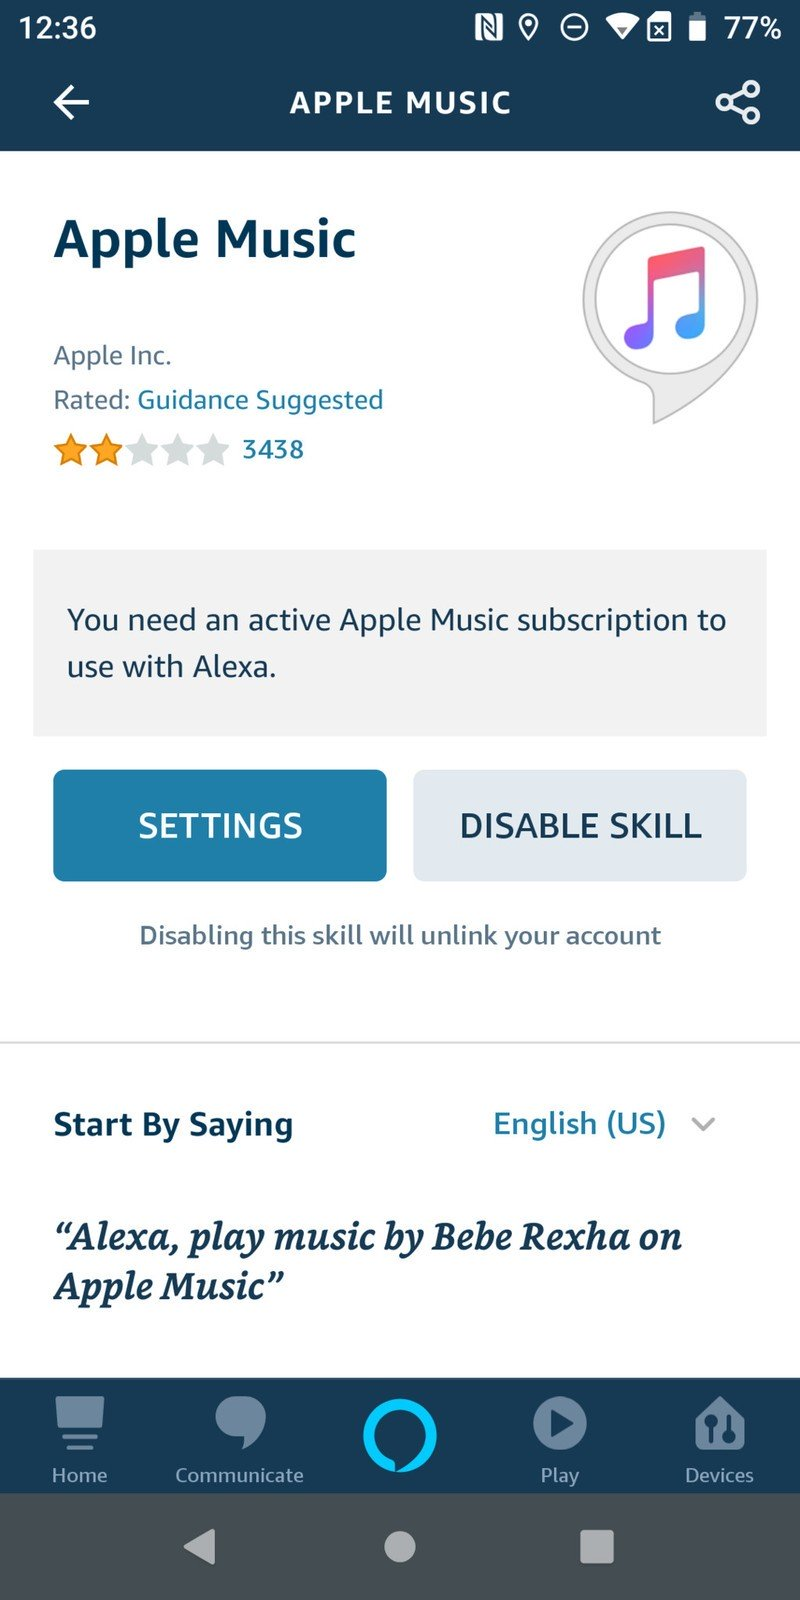 alexa-app-apple-music-5.jpg?itok=3kNdAUT